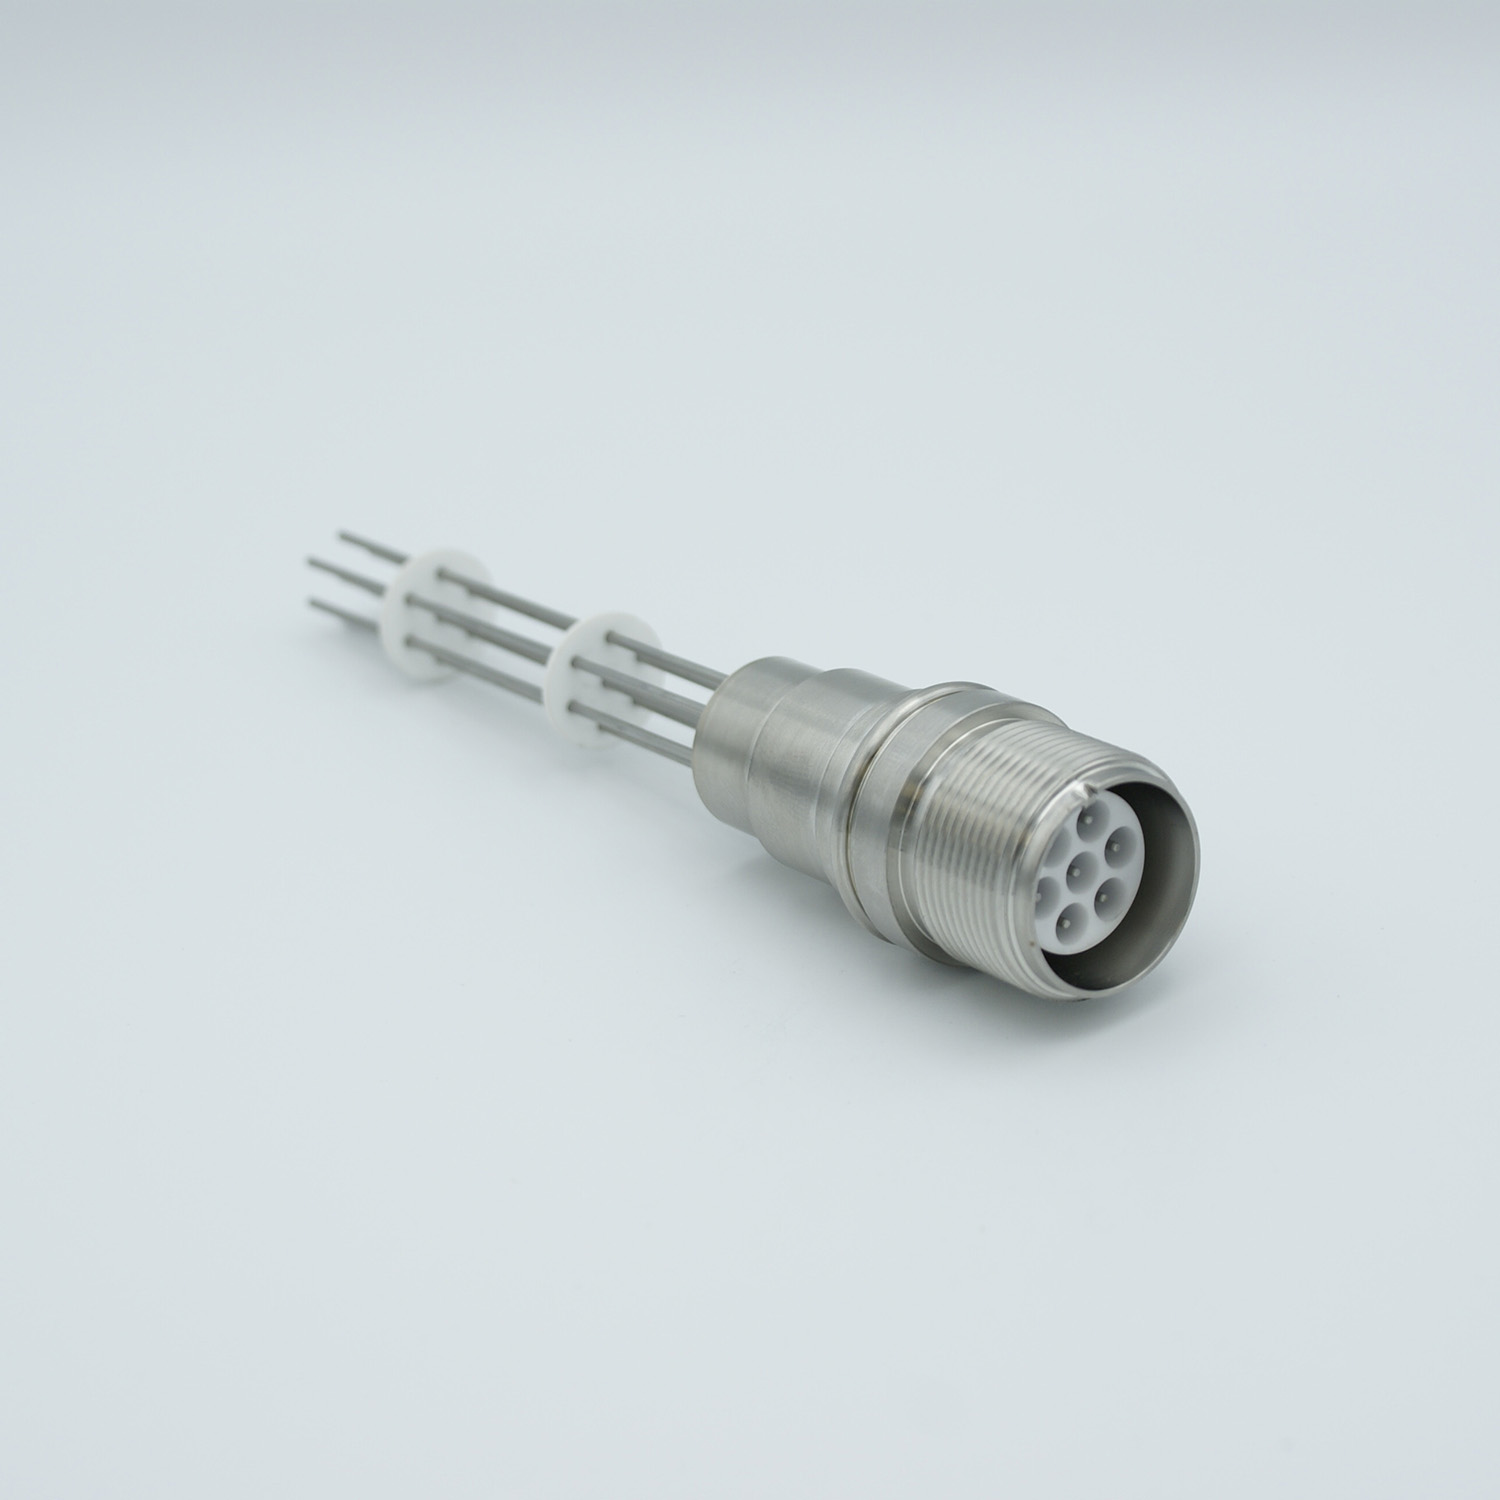 7 pin MS style MIL-C-5015 feedthrough with air side connector, molybdenum conductor, 12000V / 7,5 Amp, weld fitting